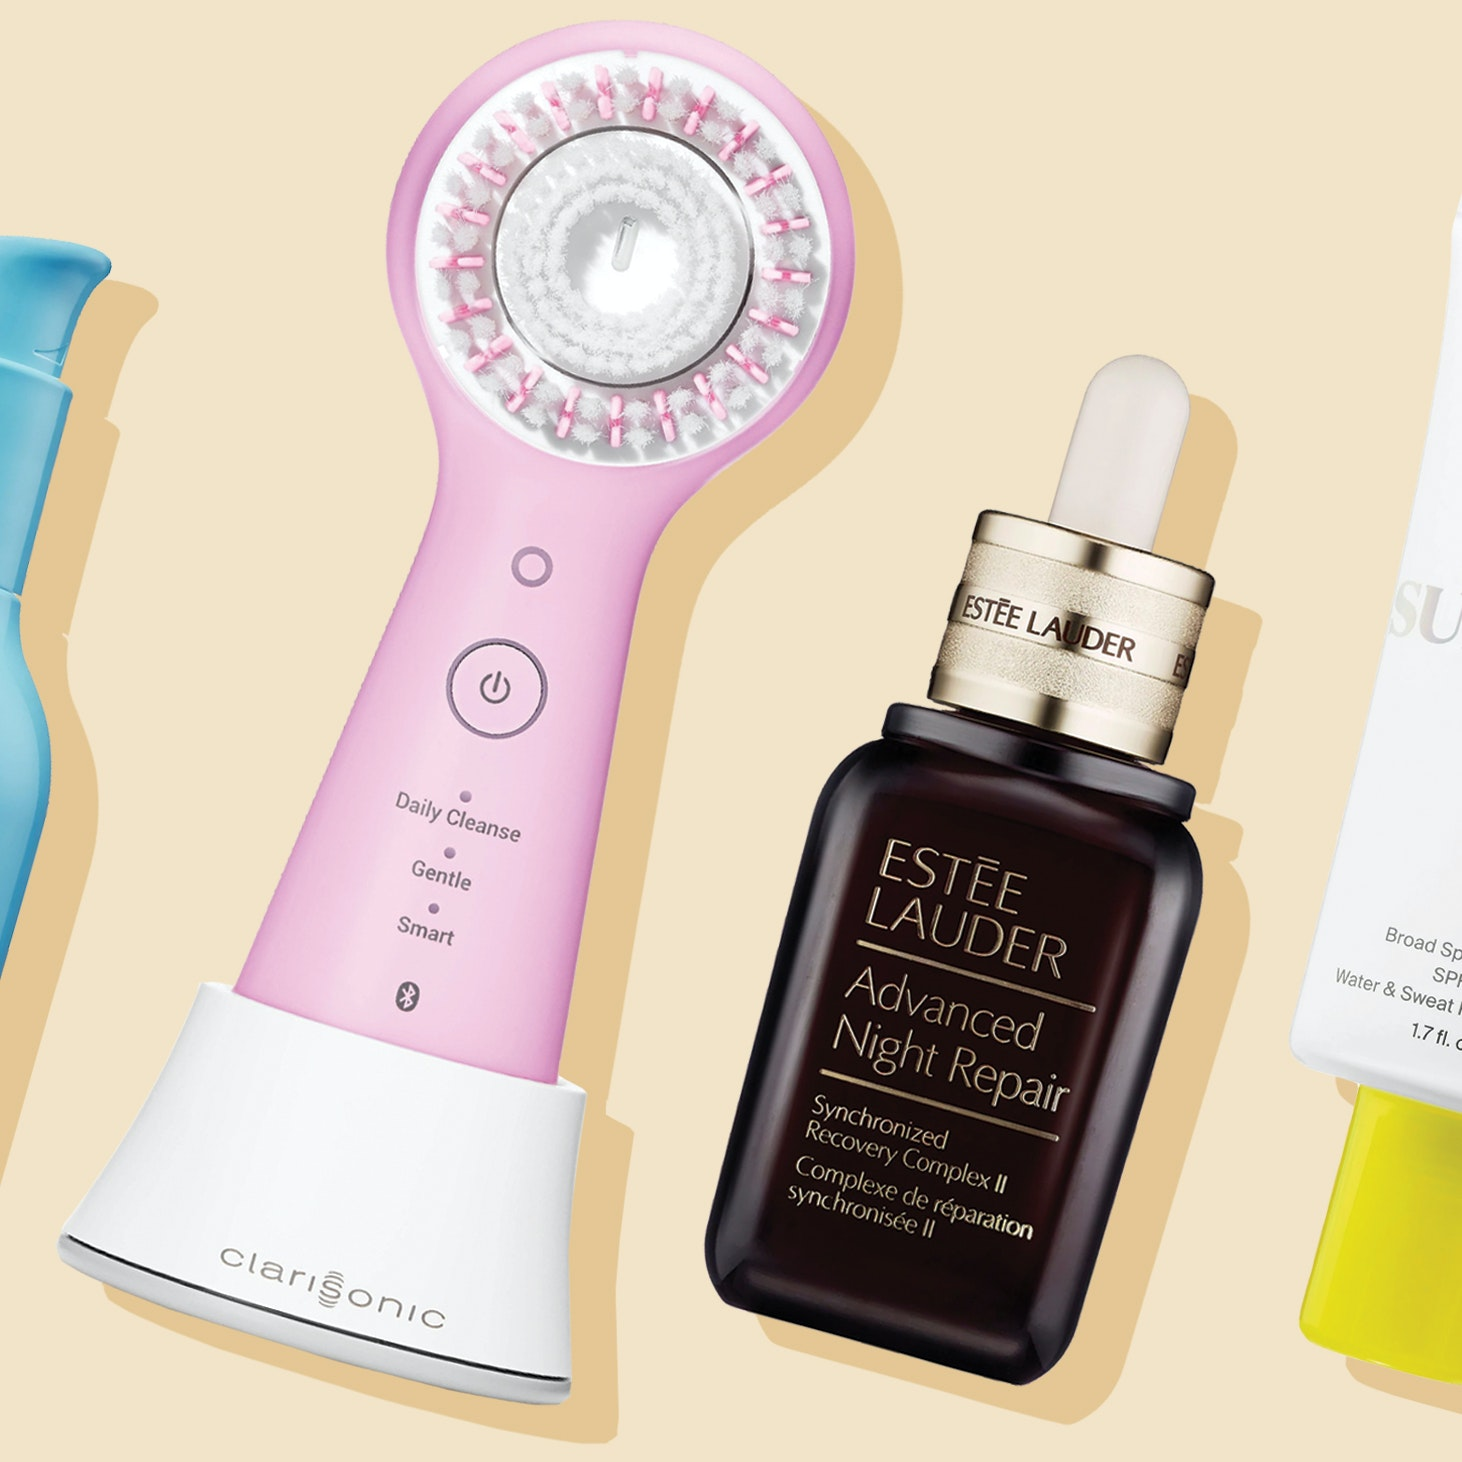 Dark Spot Serums, SPFs, and More Derm-Recommended Products You Can Snag at Sephora